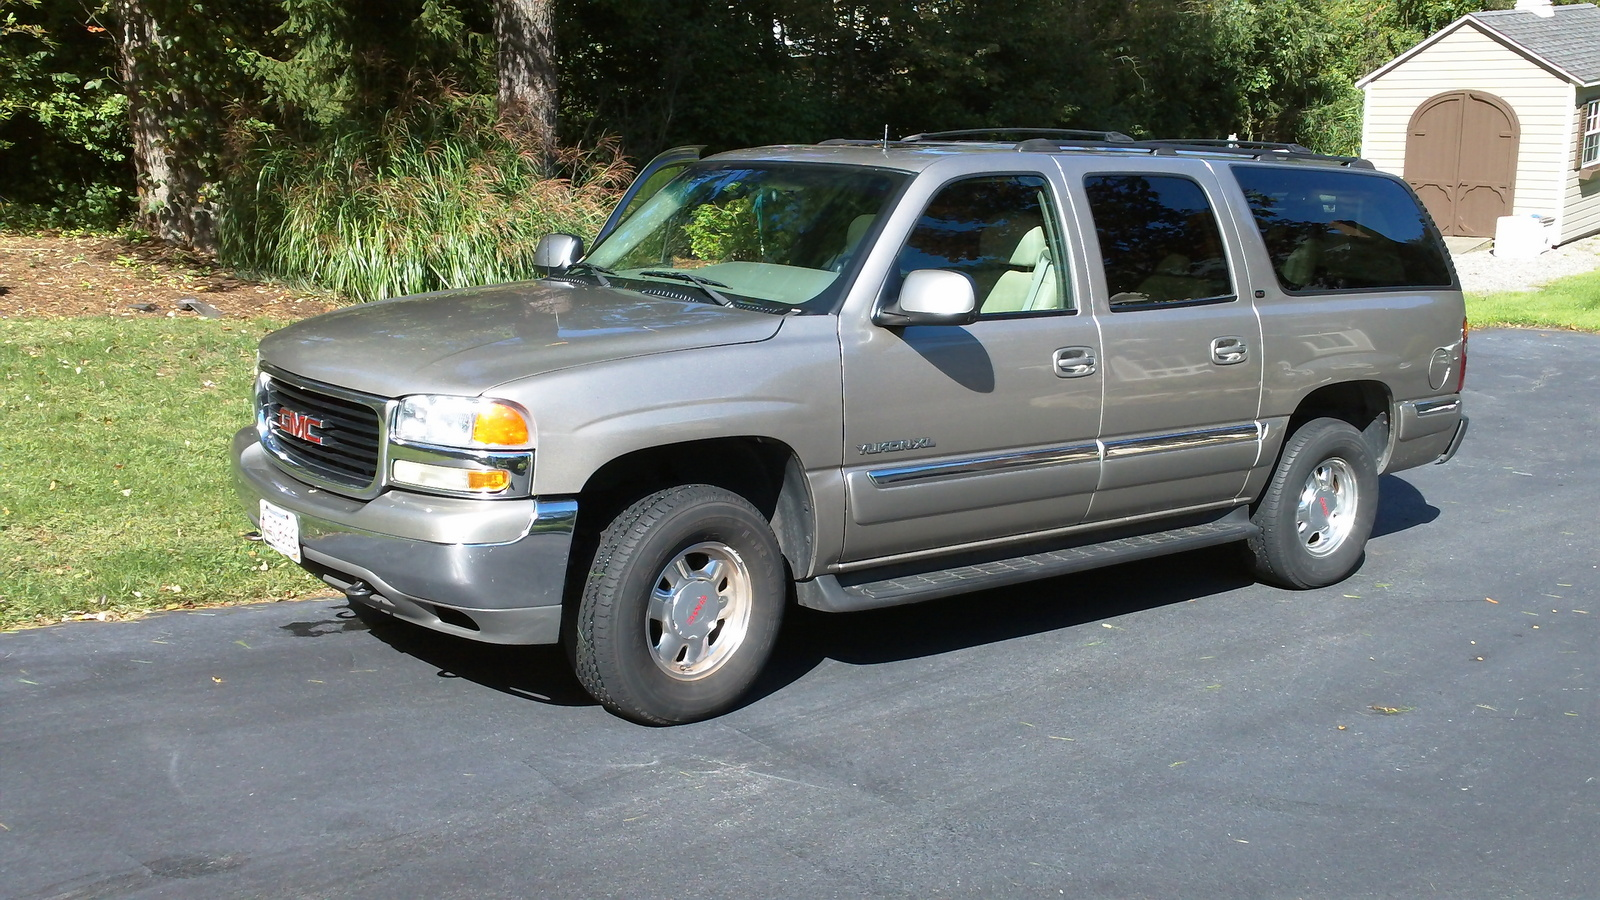 2002 gmc yukon xl pictures cargurus. Black Bedroom Furniture Sets. Home Design Ideas